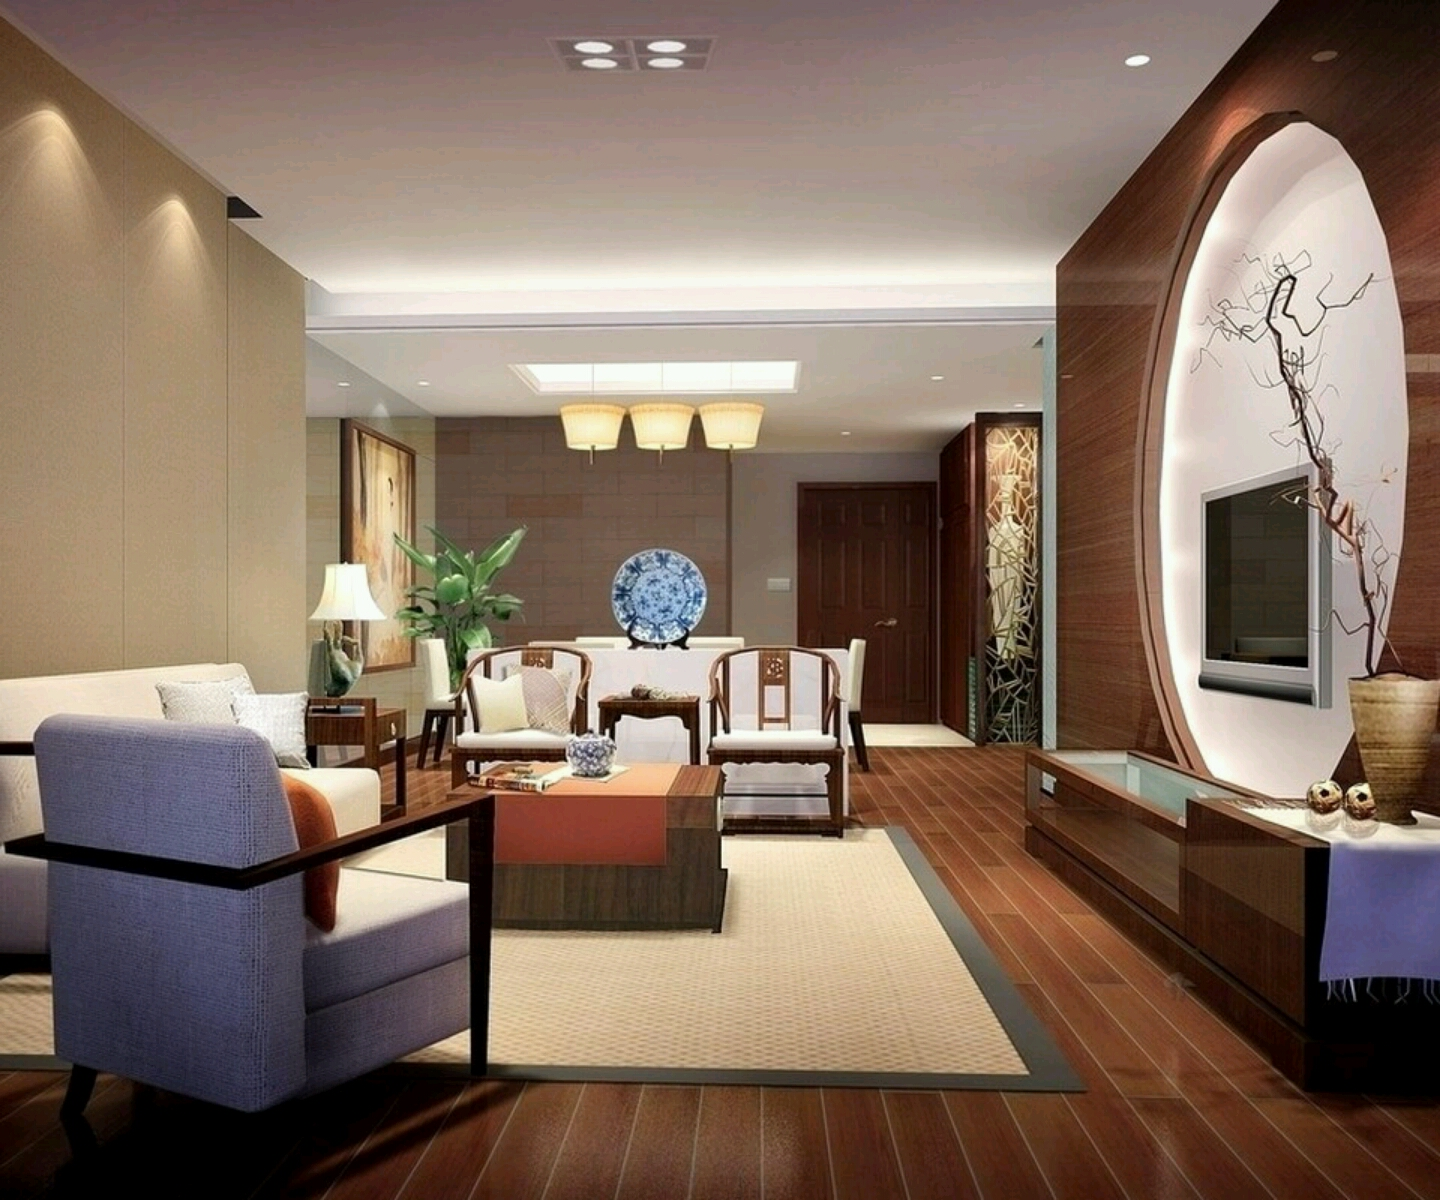 Interior Decor Ideas For Living Rooms: Luxury Homes Interior Decoration Living Room Designs Ideas